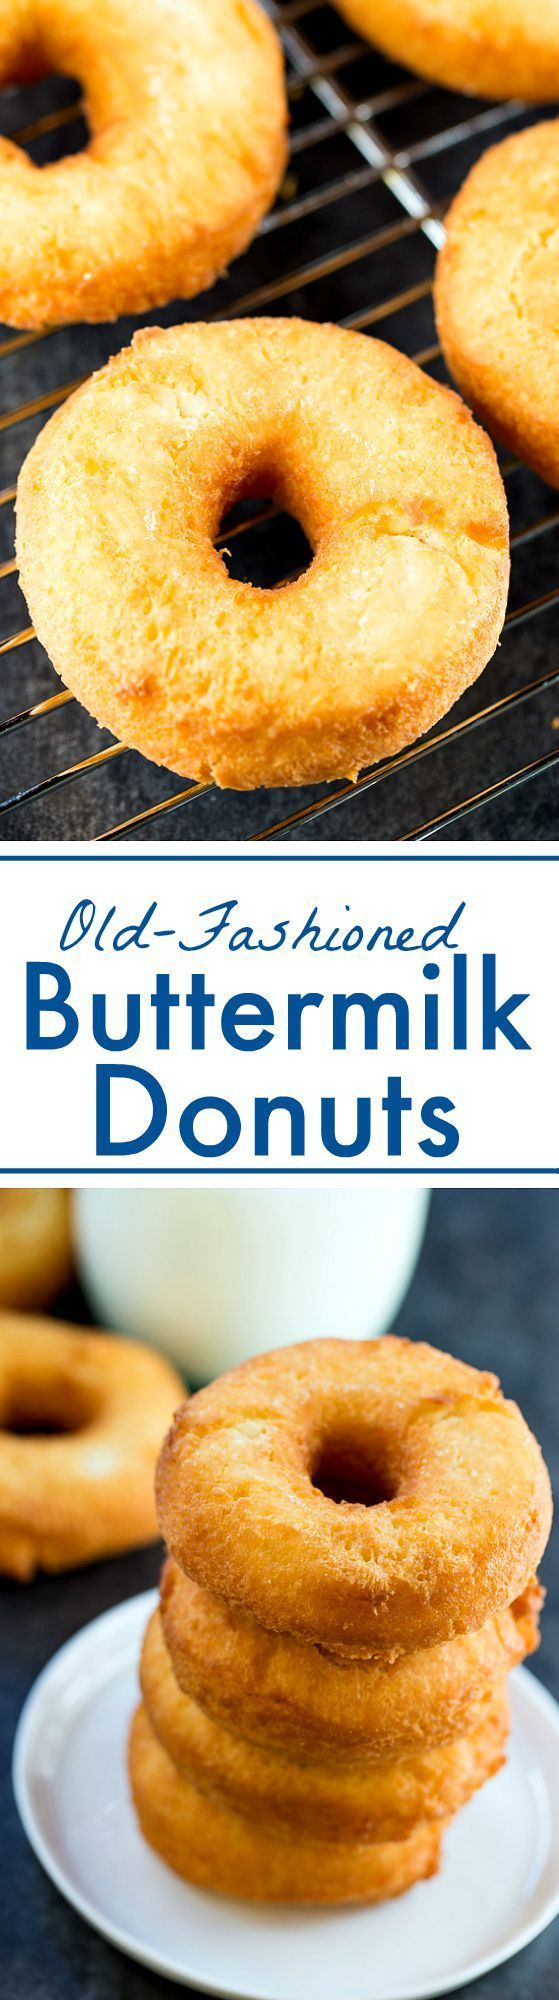 Old Fashioned Buttermilk Doughnuts Spicy Southern Kitchen Recipe Delicious Donuts Recipes Donut Recipes